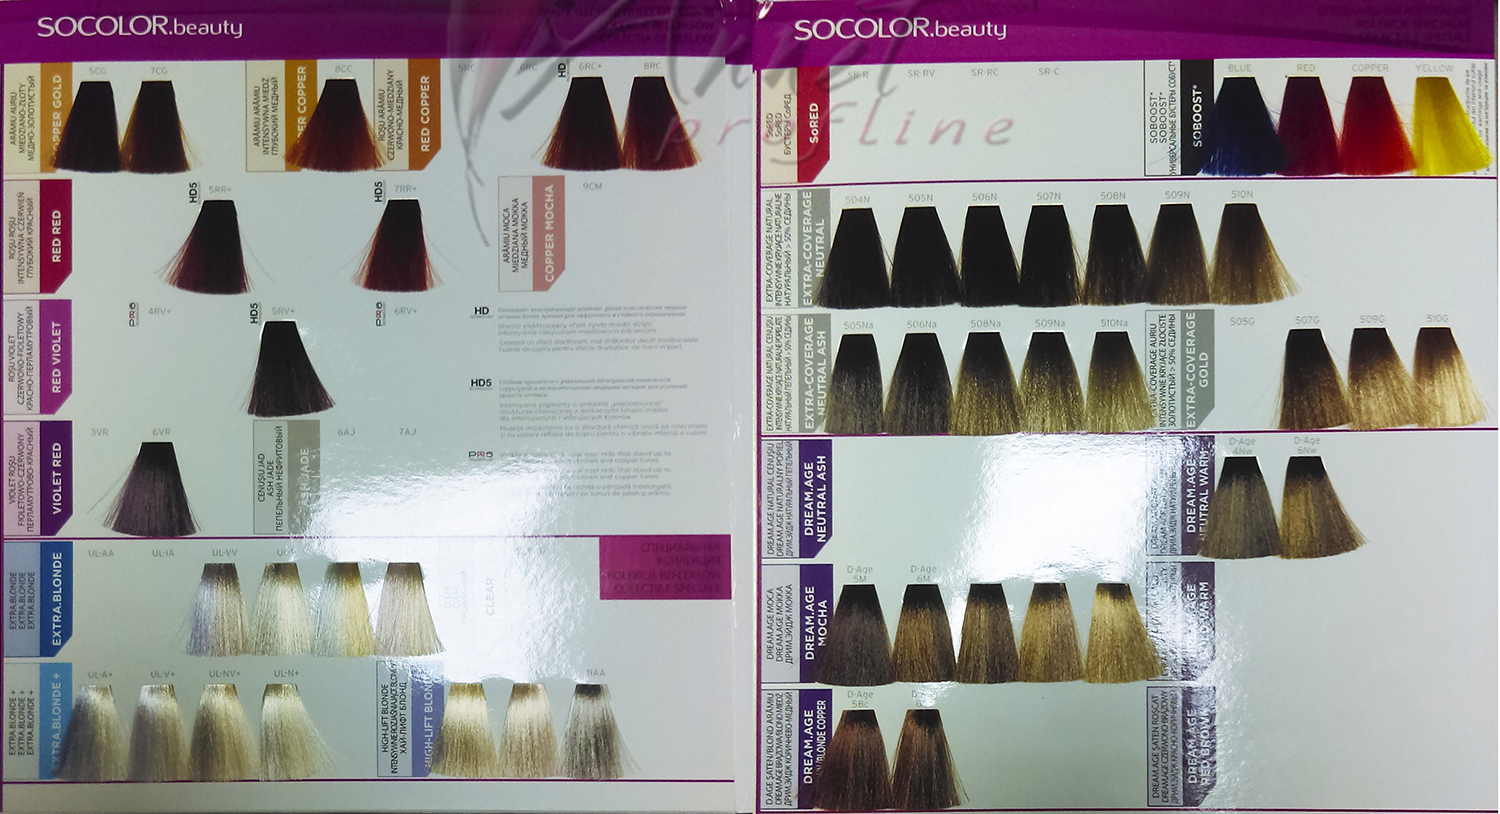 Matrix socolor beauty kraska palitra banner2 annet shop ru